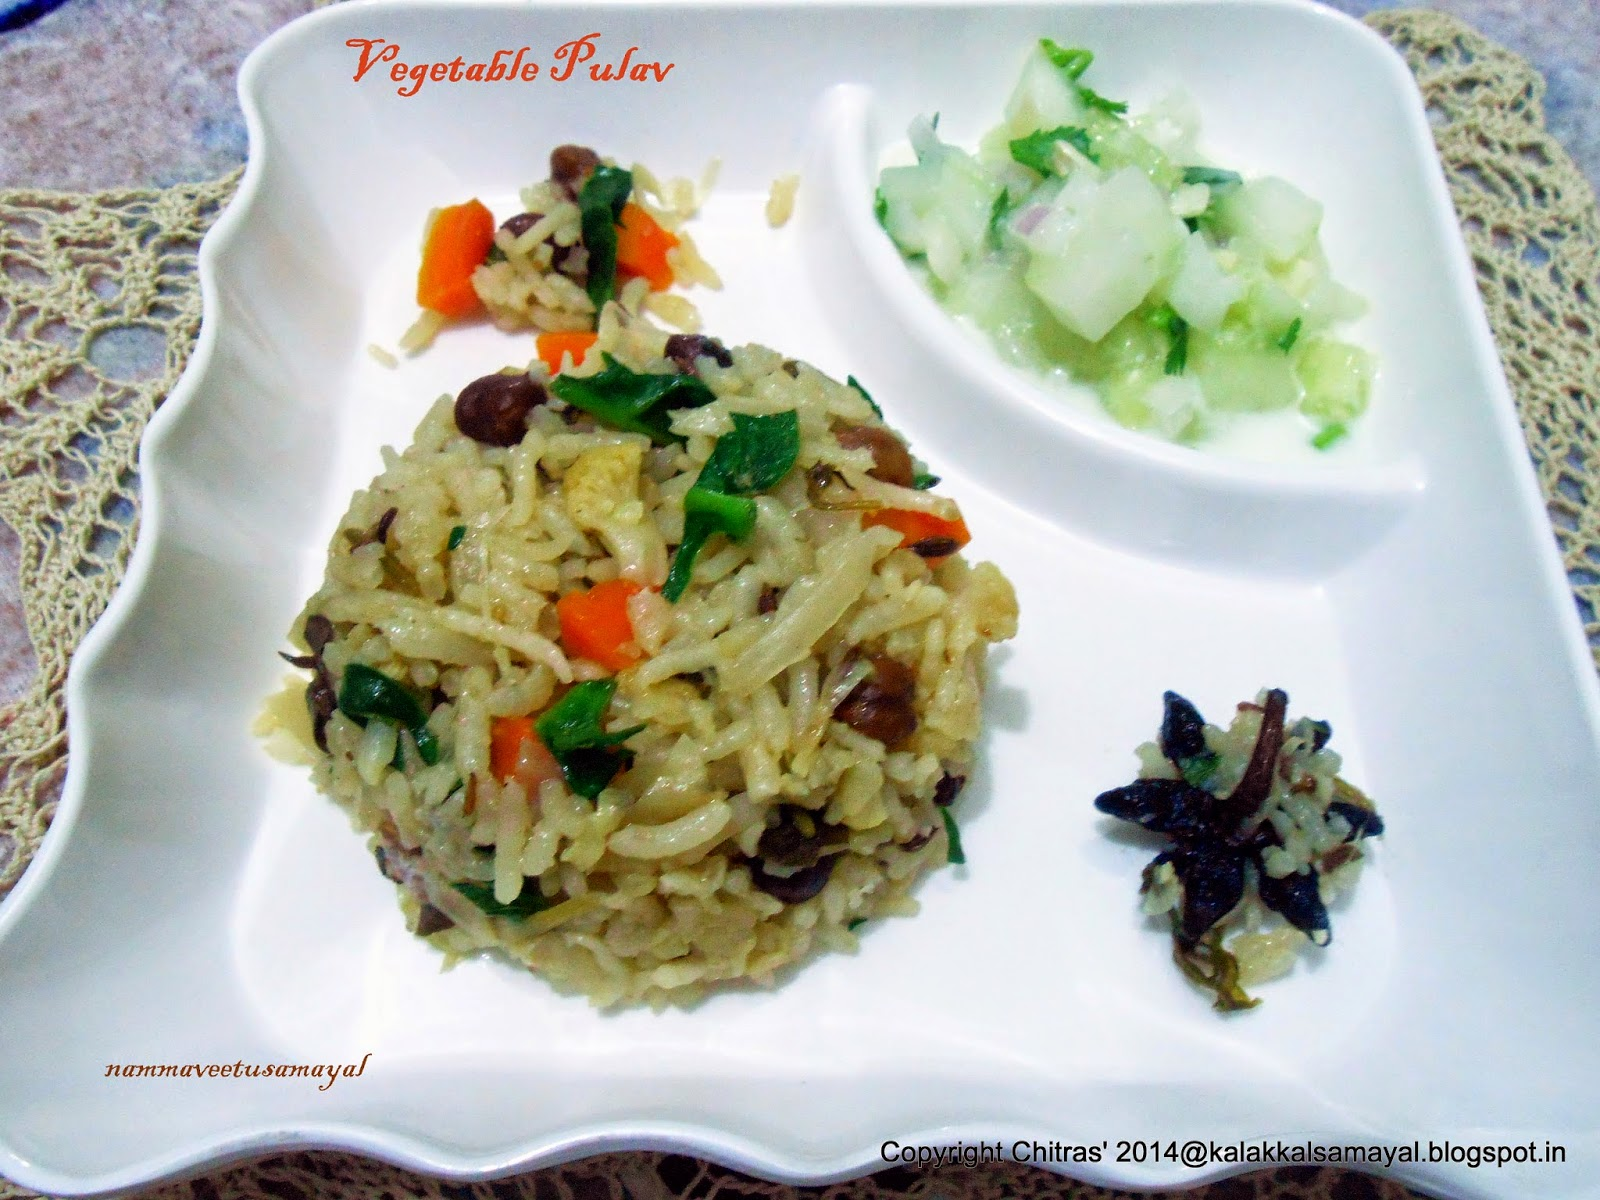 Veg pulav with coconut milk